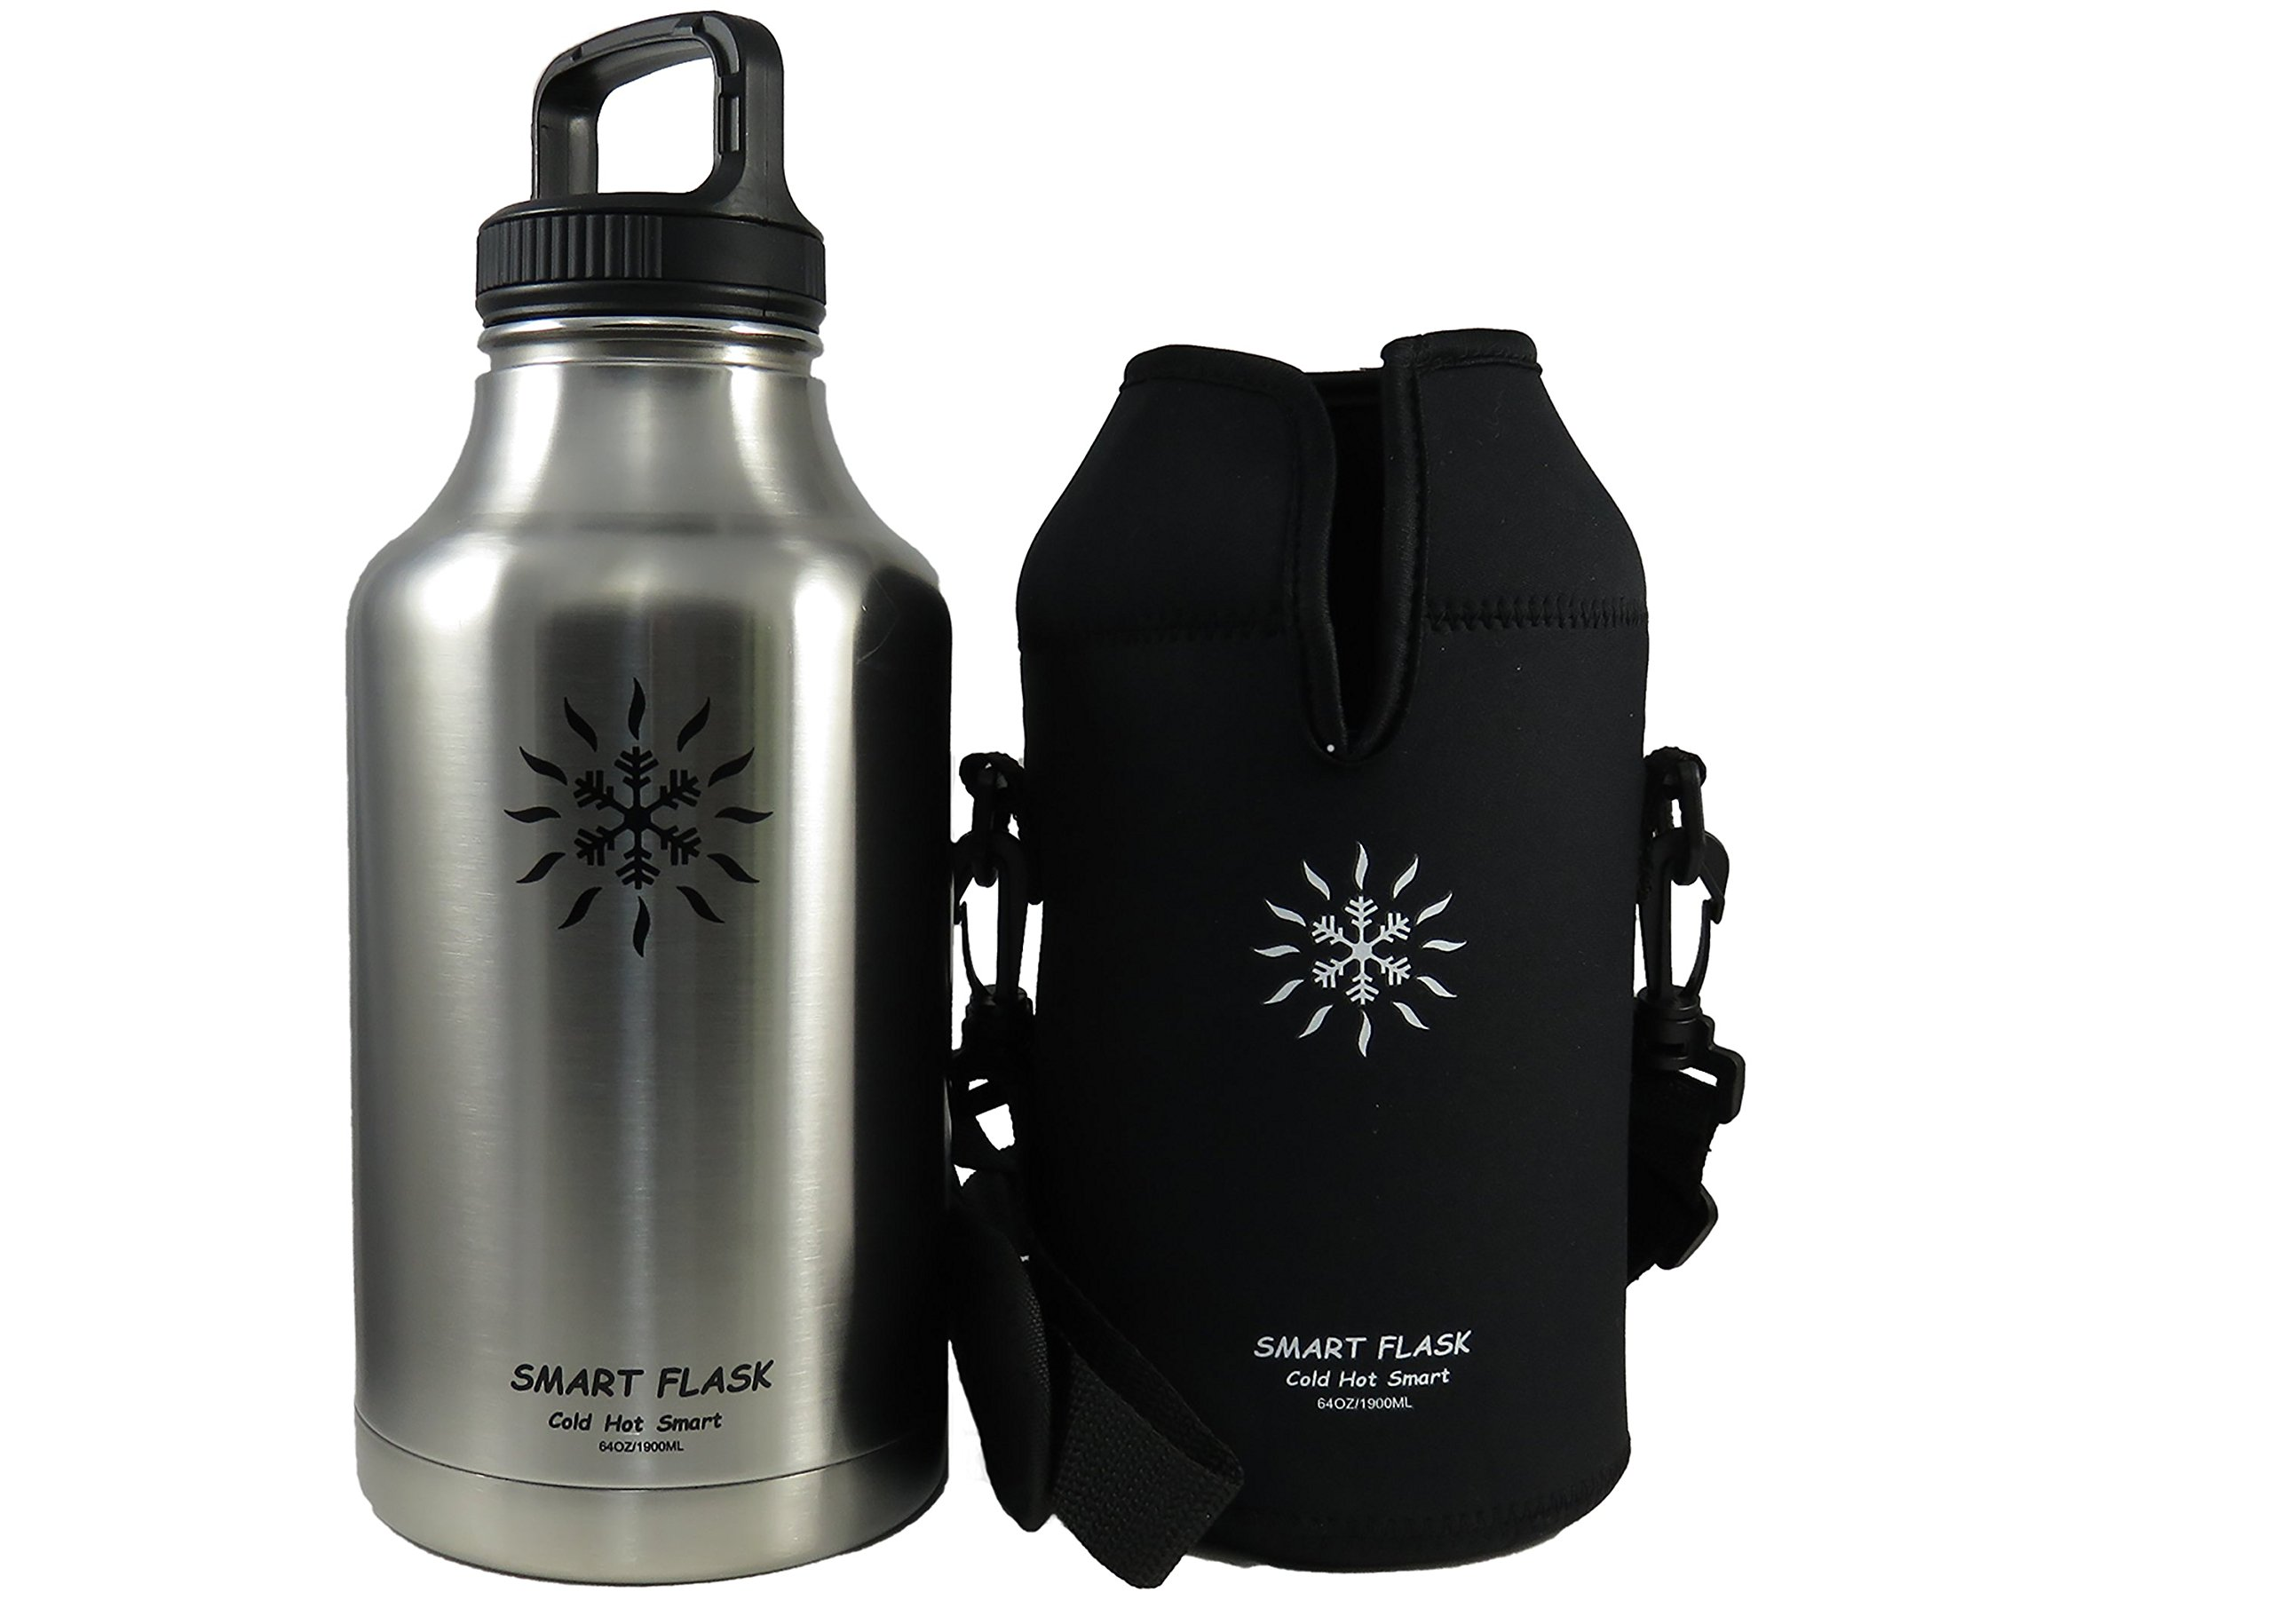 Smart Flask 64oz Beer growler (Stainless Steel)